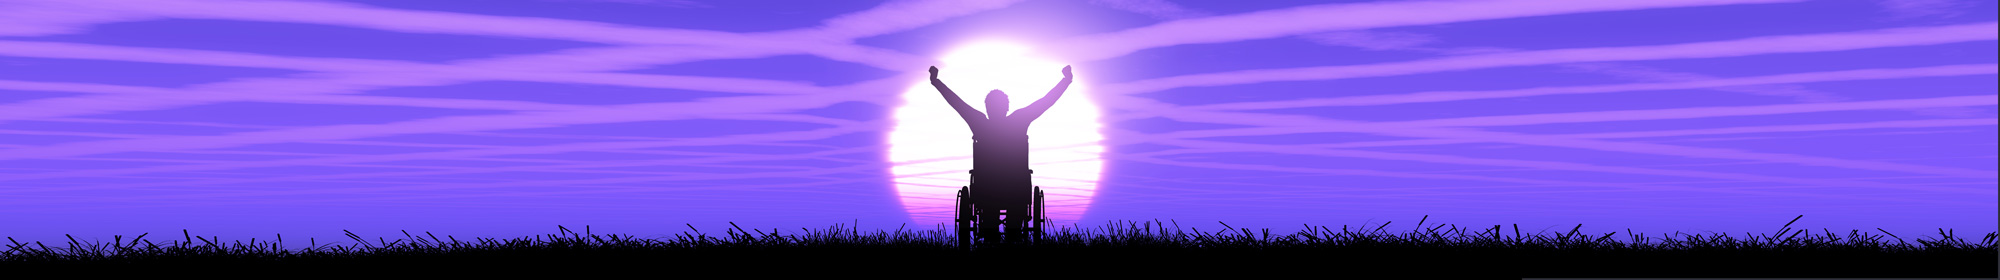 silhouette of a man in a wheelchair with arms raised against a vibrant purple sunset